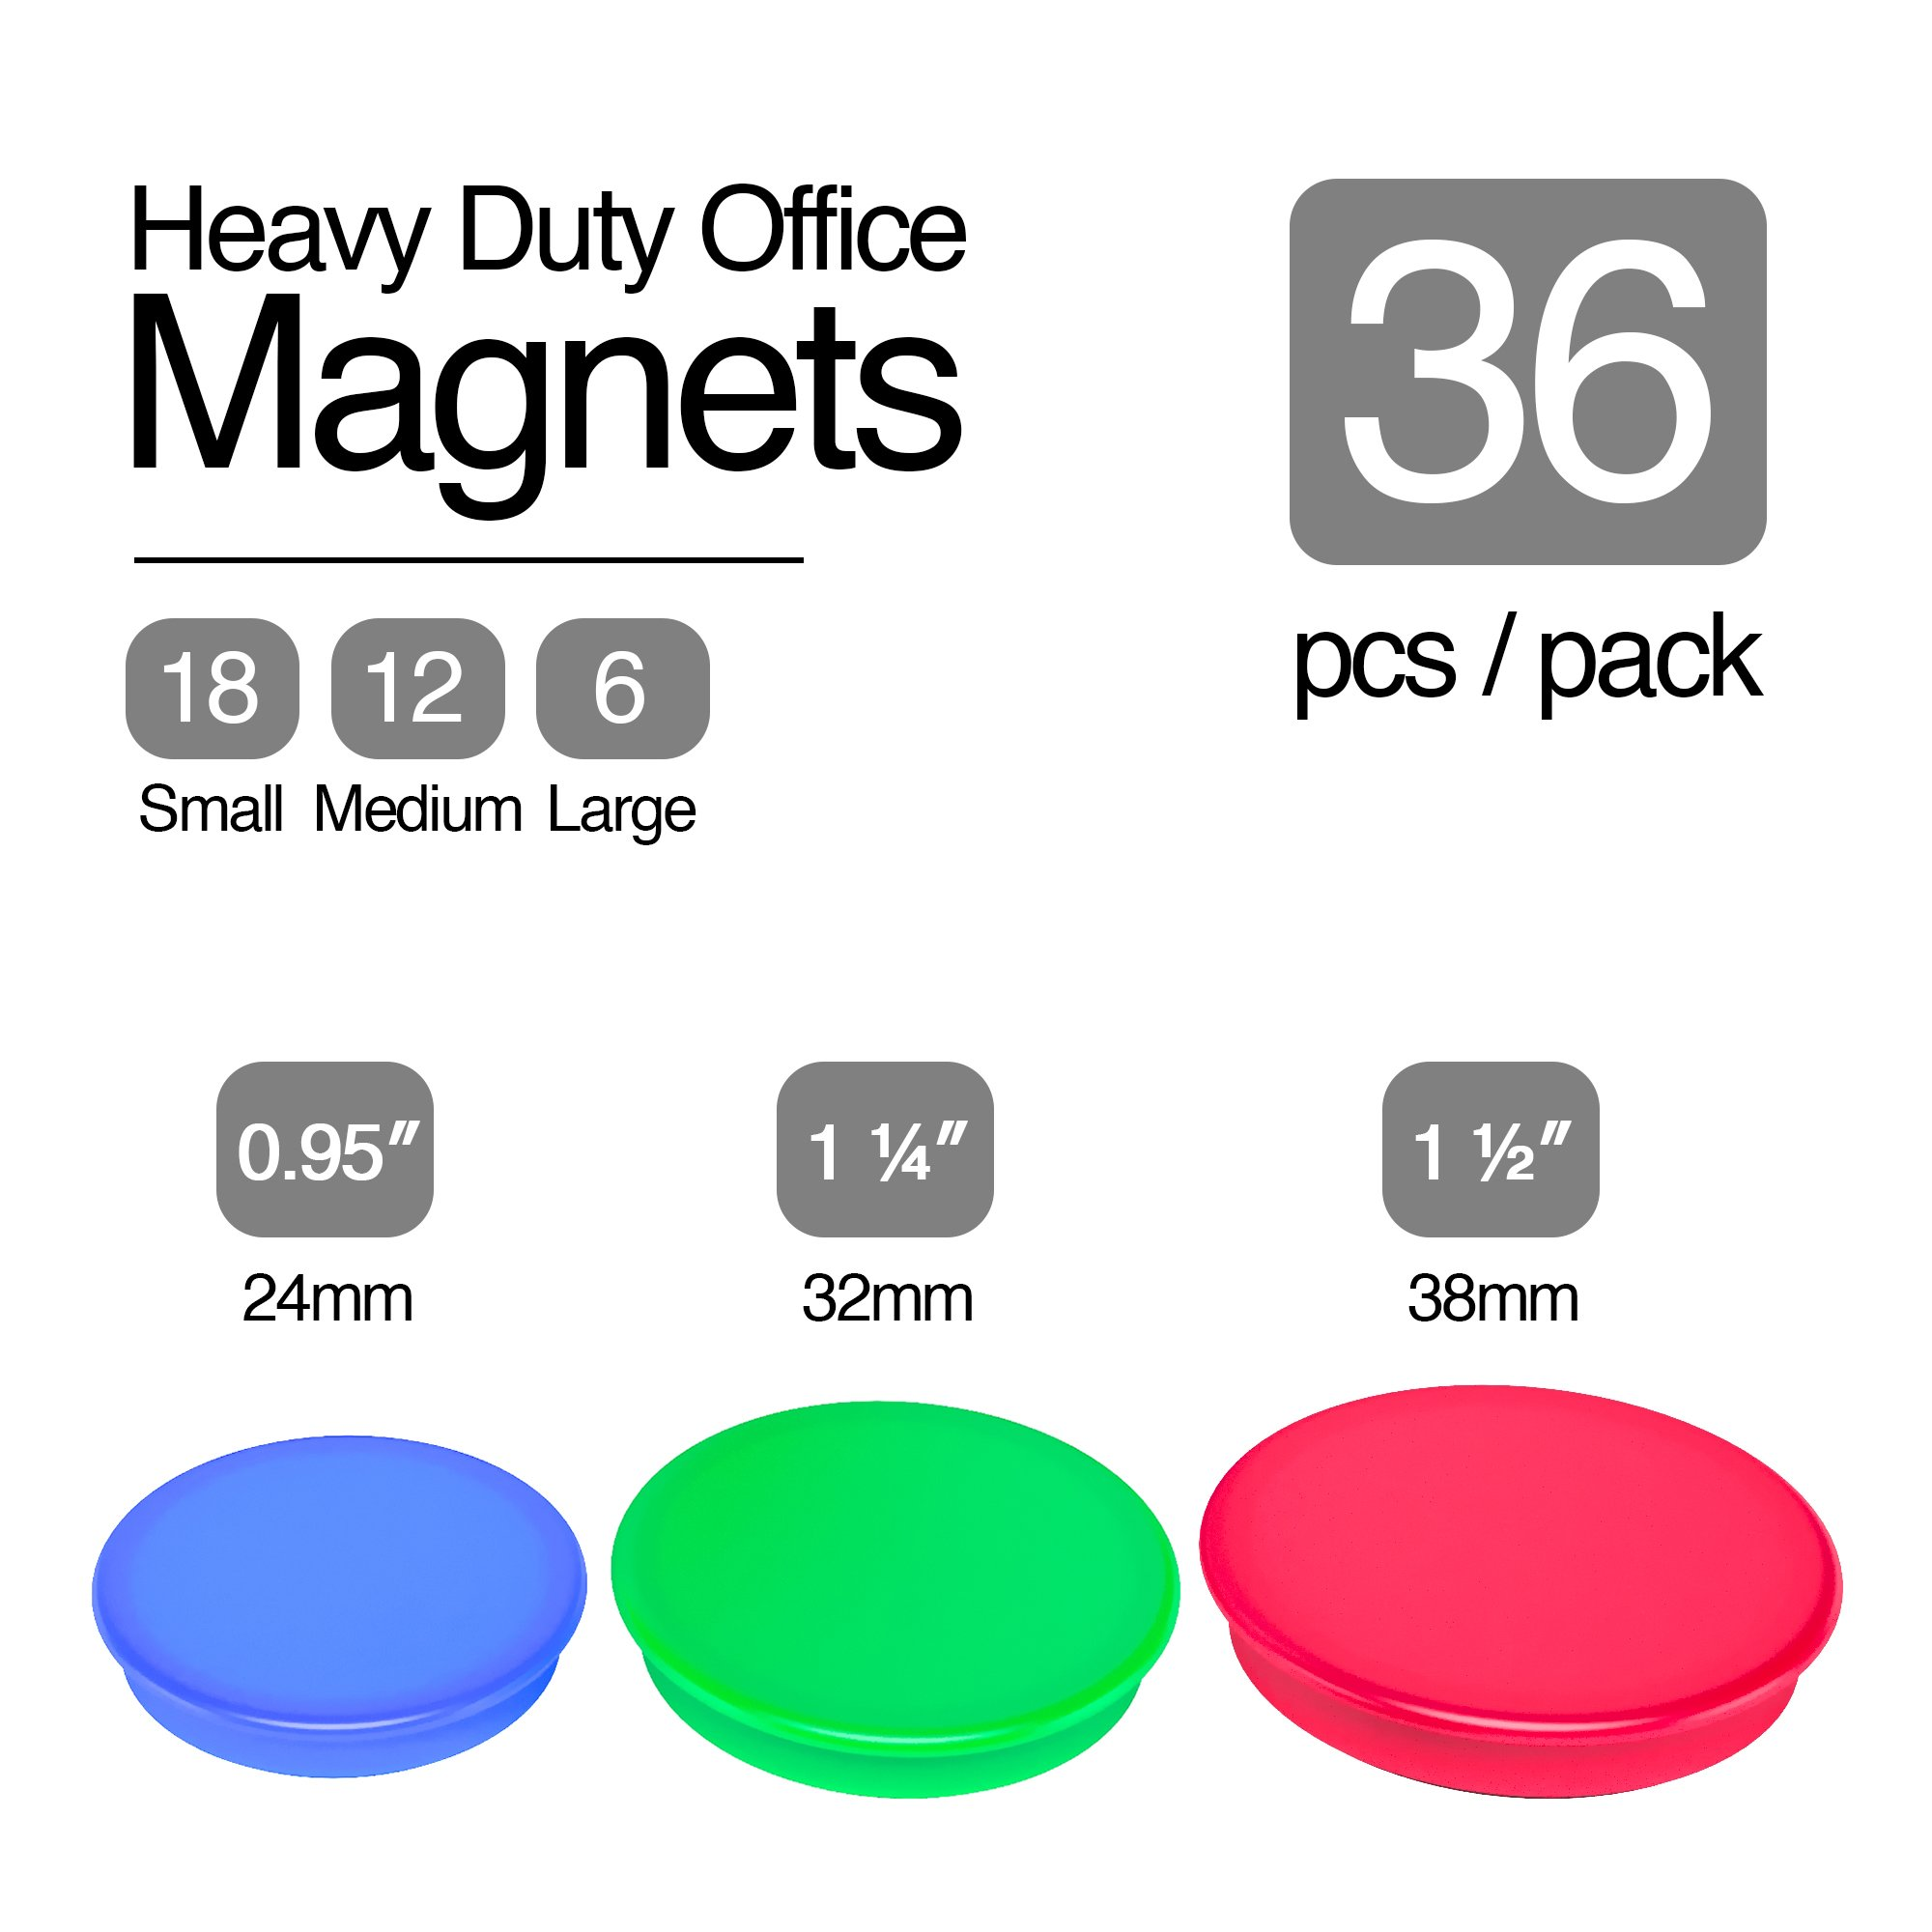 36-piece Veemoh Heavy duty Office magnets pack - Office, Kitchen, Refrigerator, Whiteboard magnet set by Veemoh (Image #5)